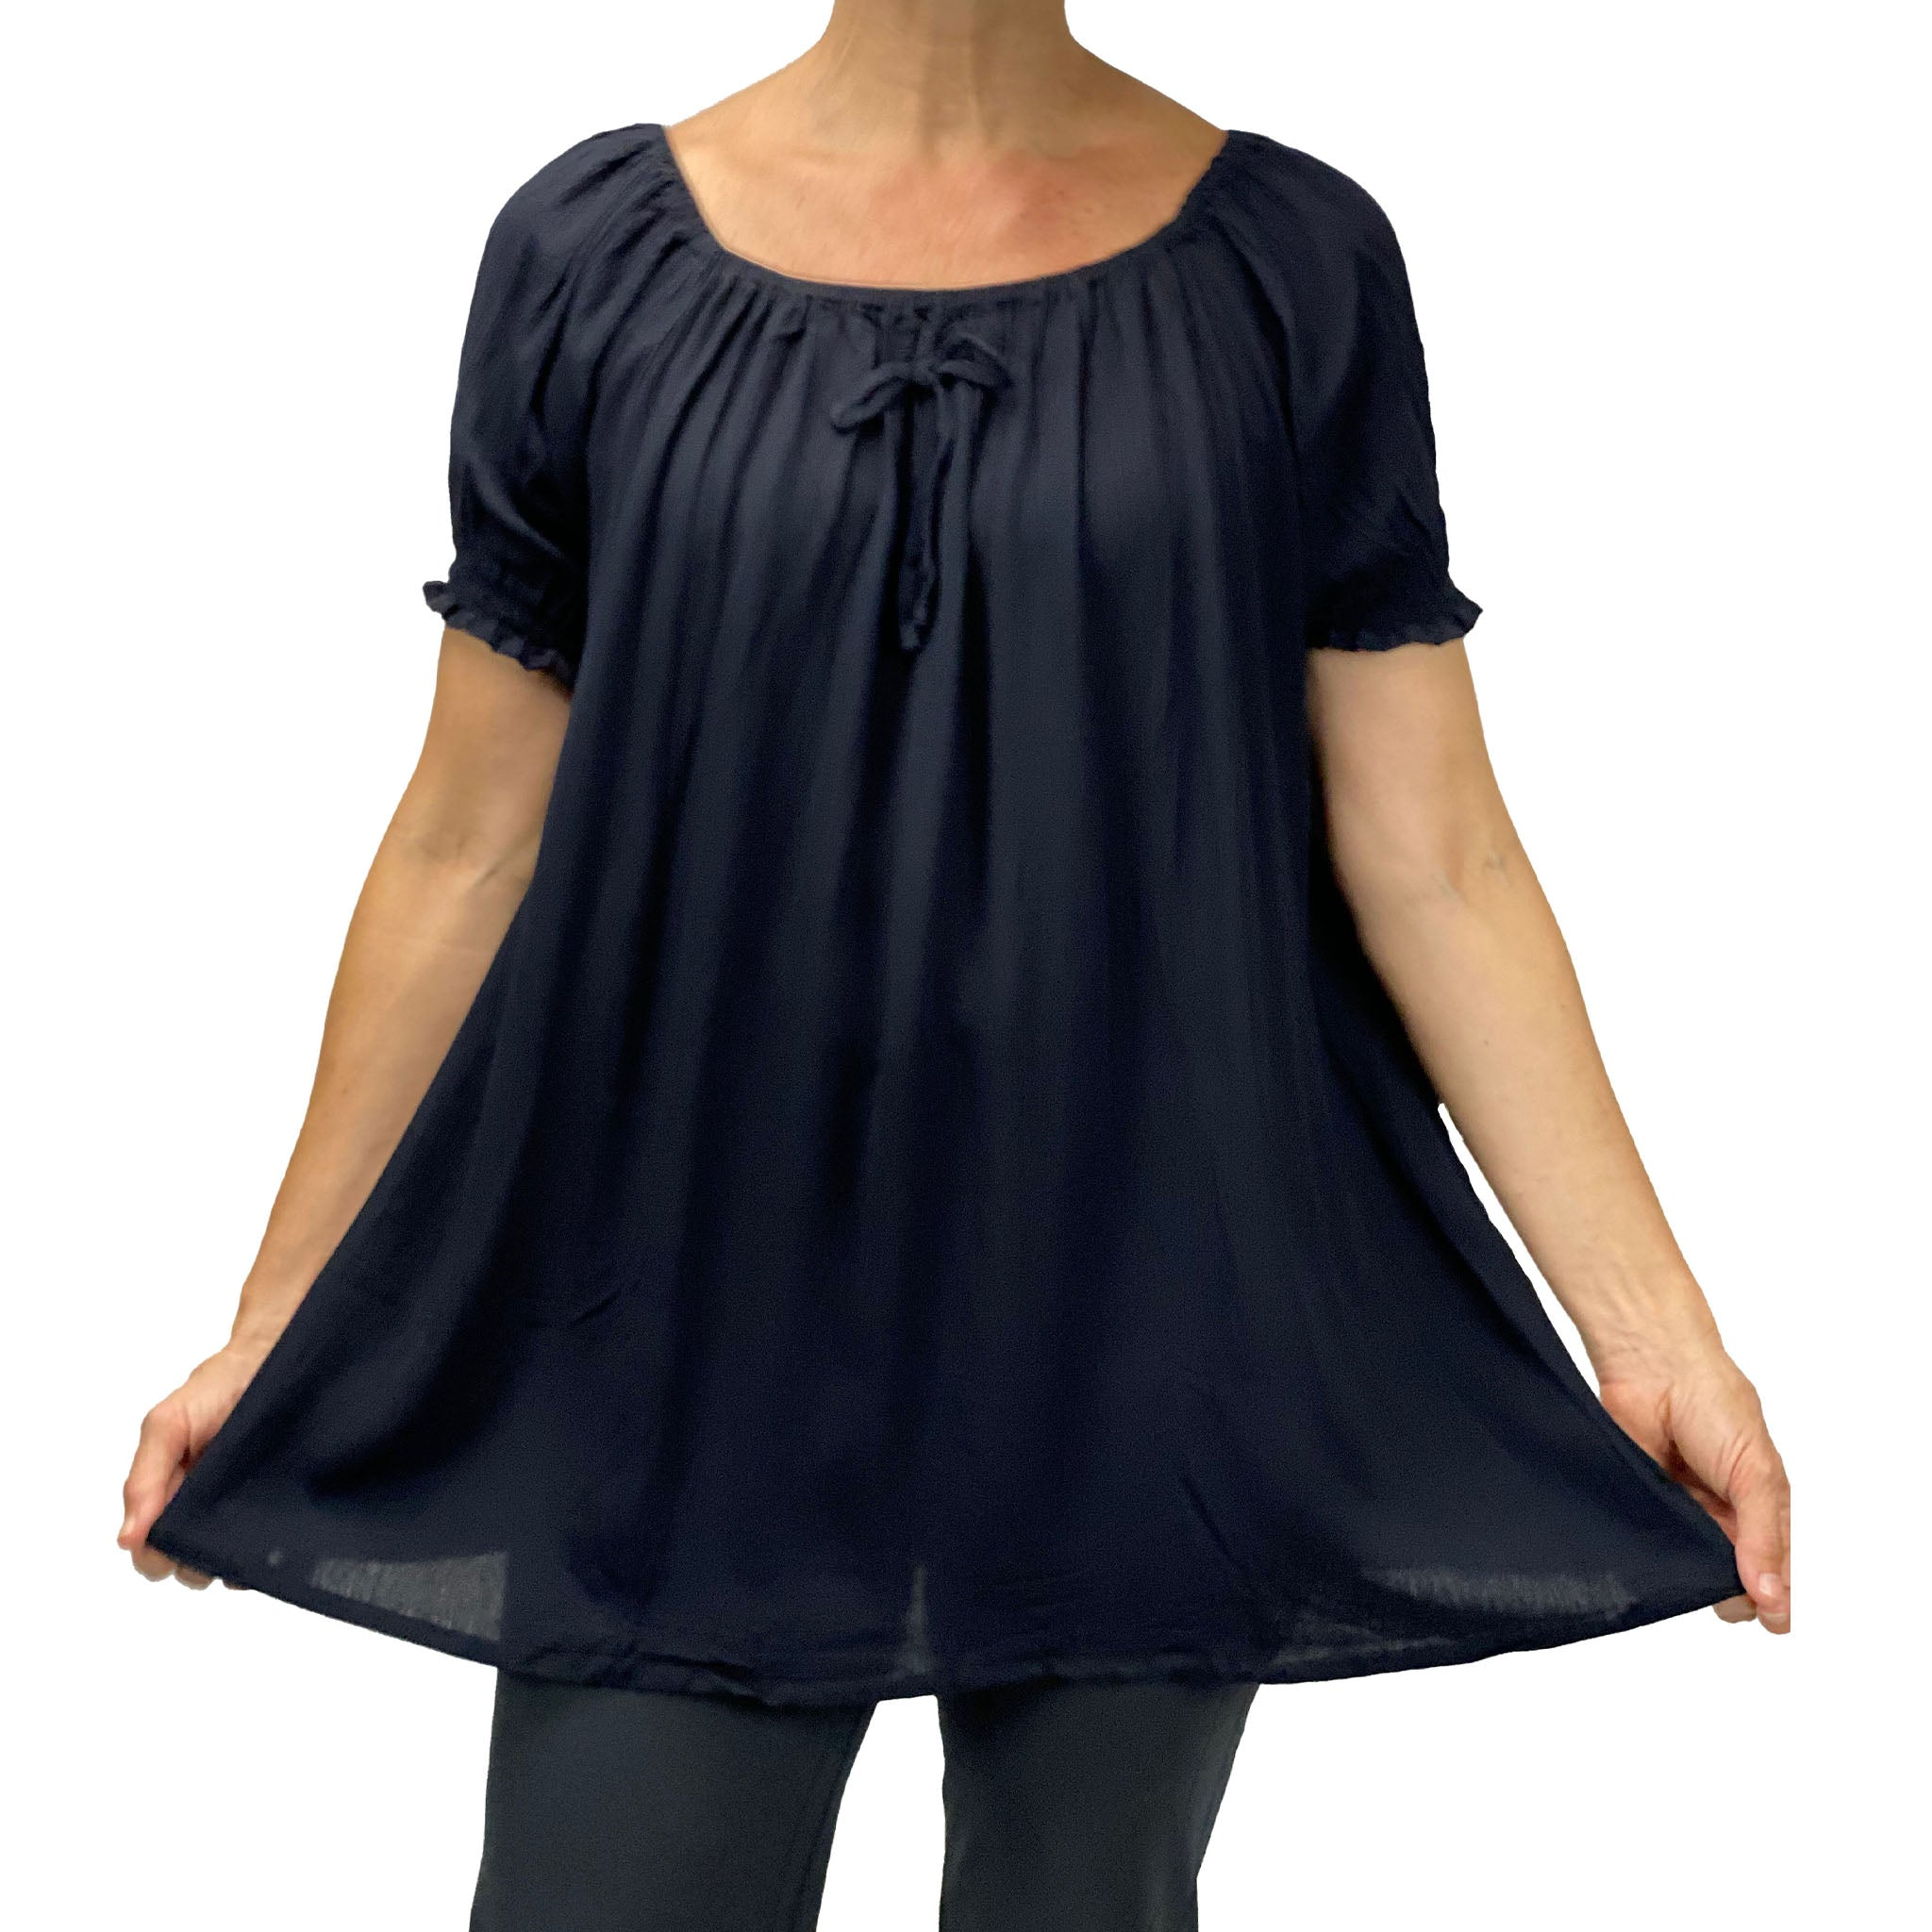 Womans renaissance top pirate blouse Black Front